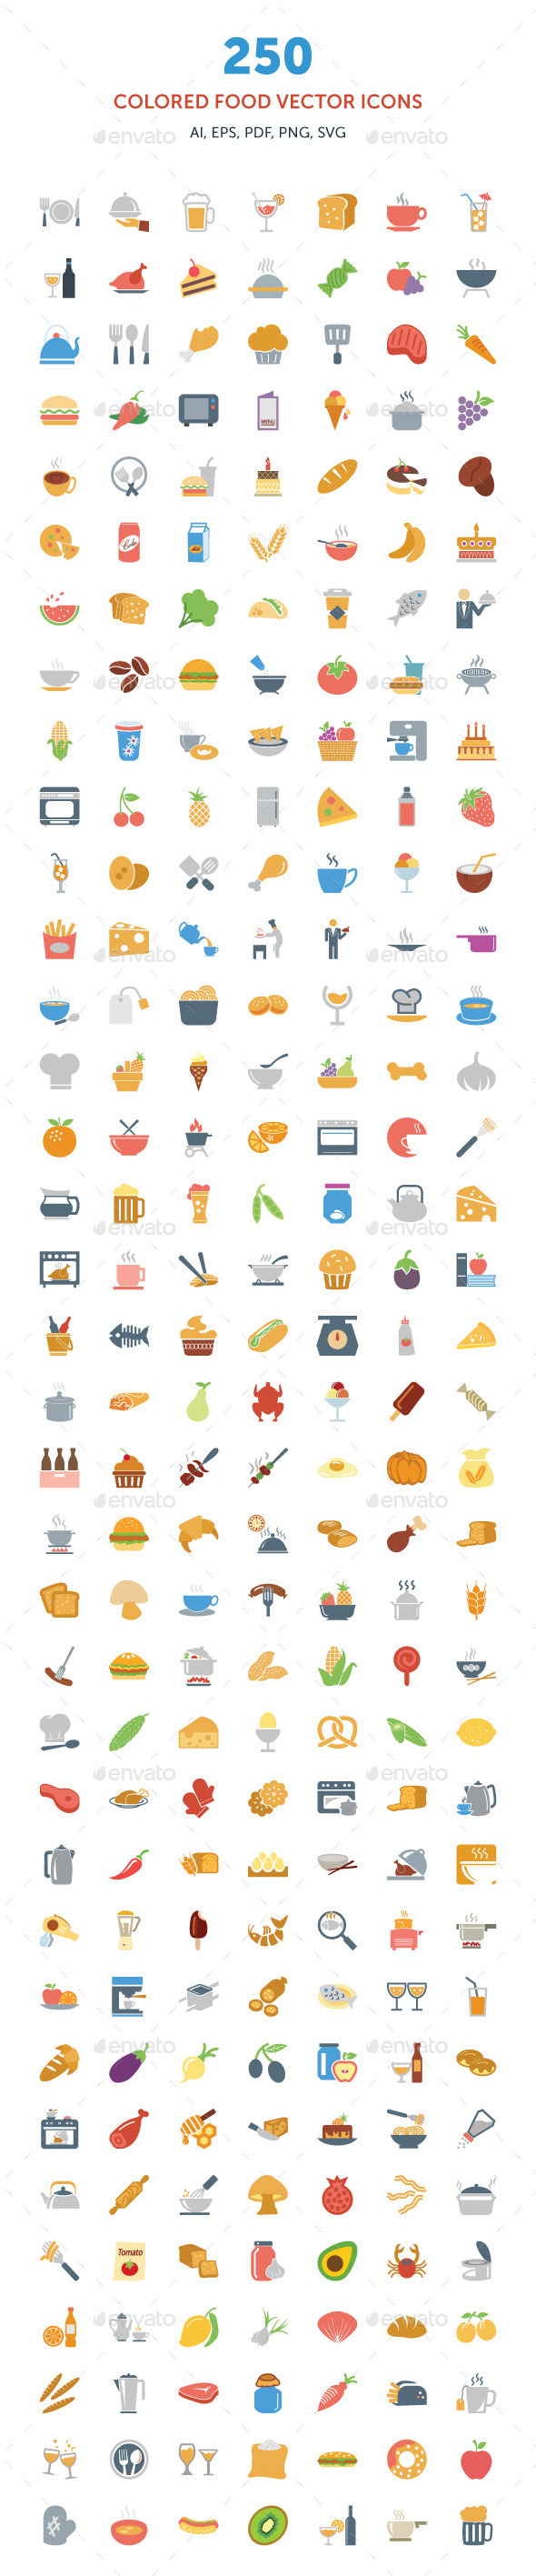 GraphicRiver 250 Colored Food Vector Icons 9284879